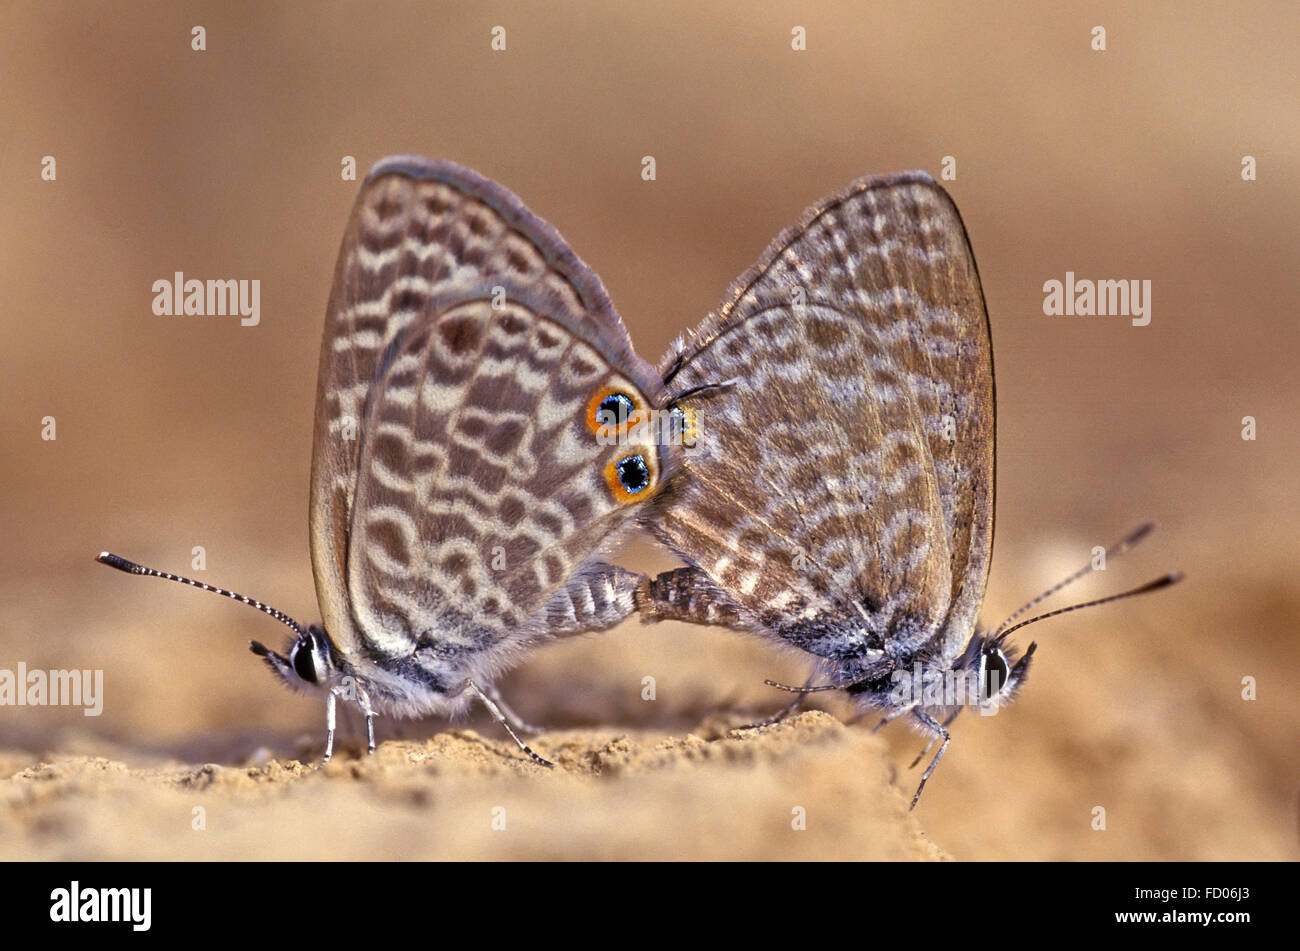 Butterfly mating on ground - Stock Image